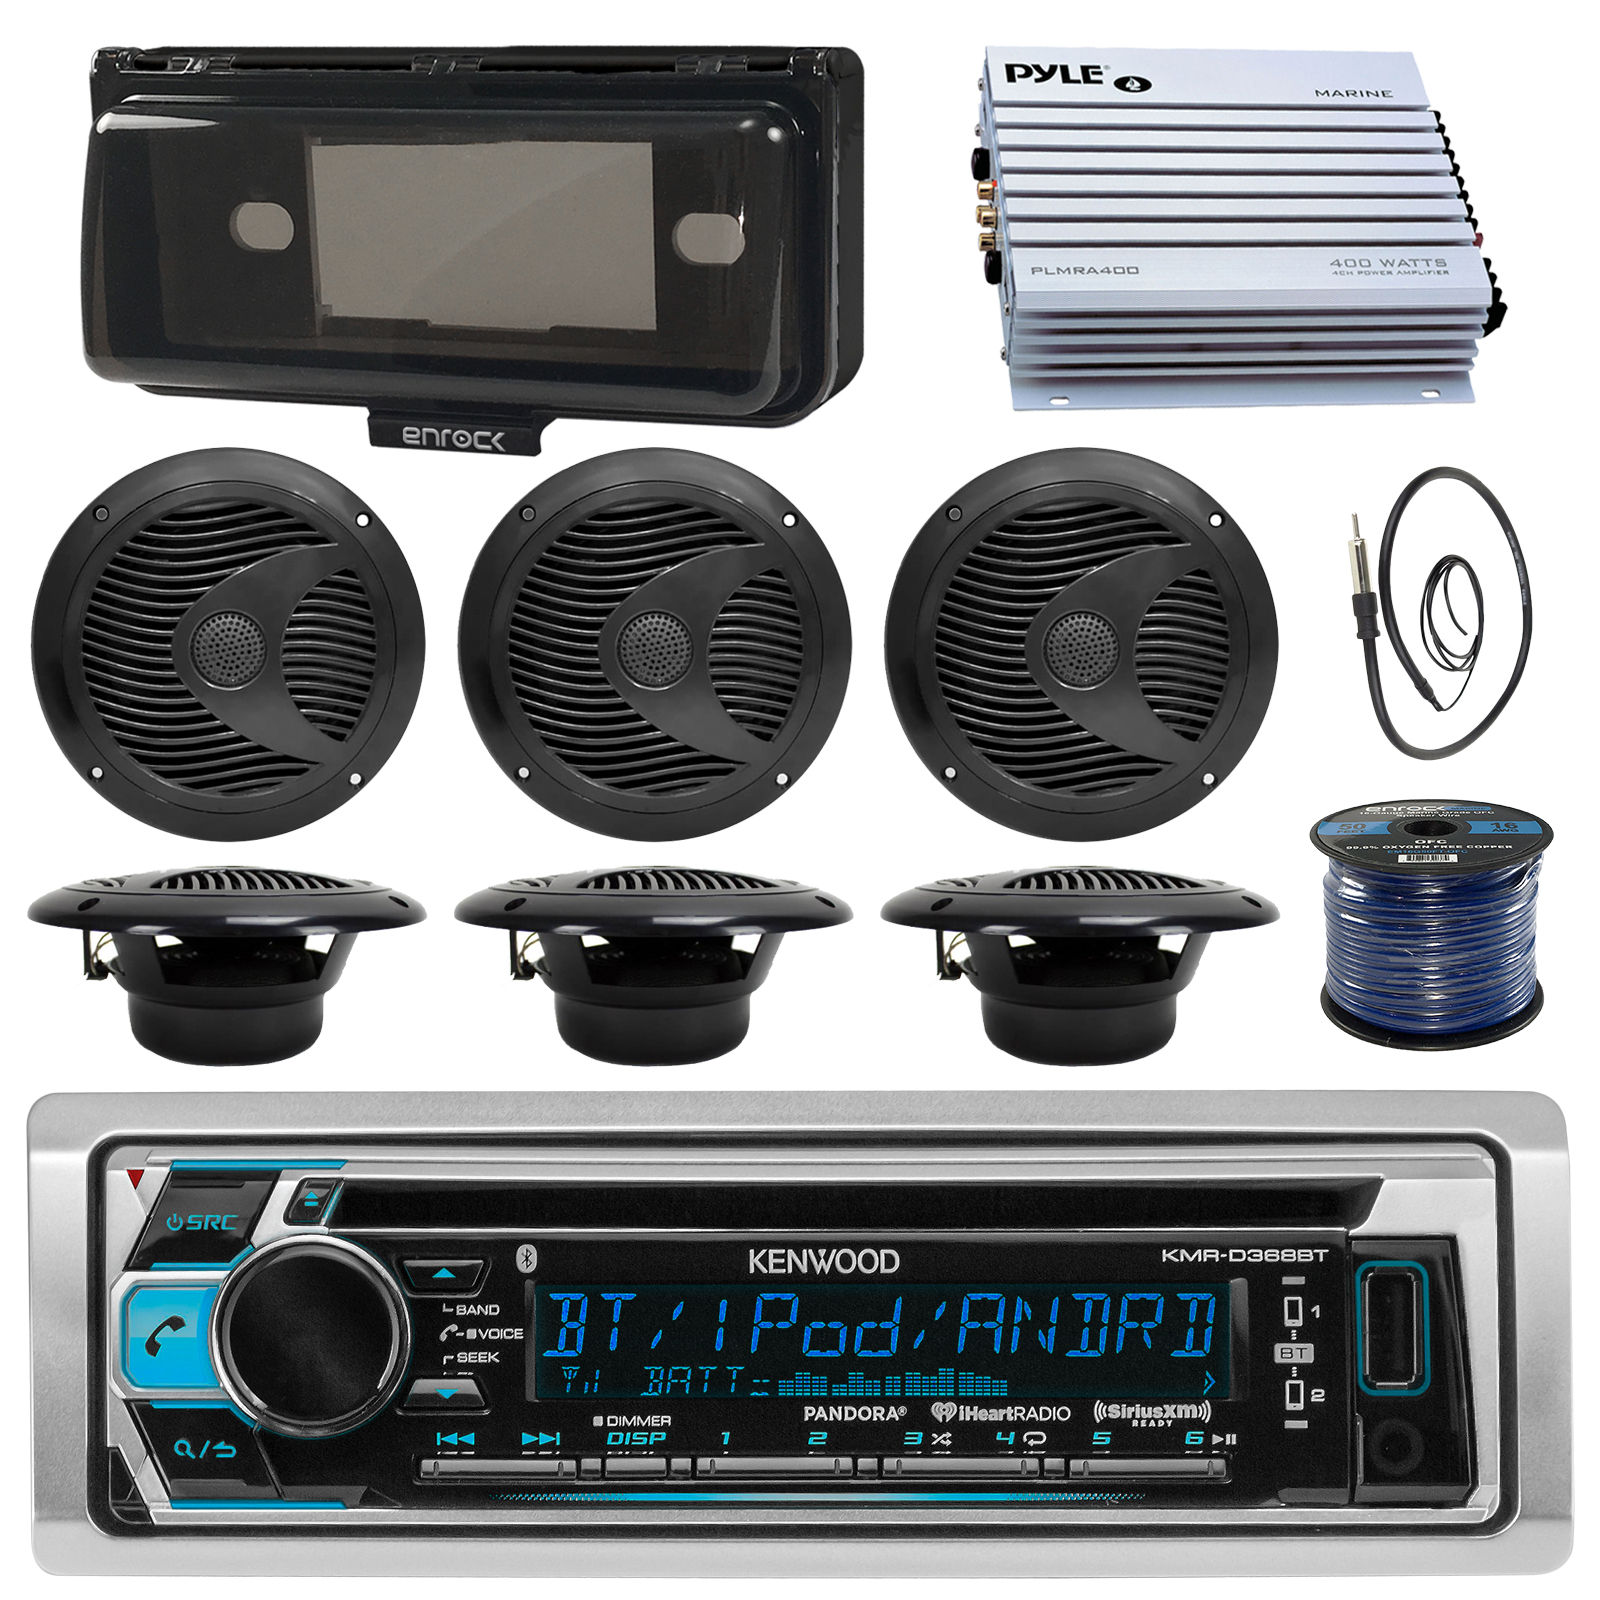 Kenwood KMRD372BT Marine Boat Audio Bluetooth CD Player Receiver W/ Protective Cover - Bundle Combo With 6x Black 6-1/2'' 150W Waterproof Stereo Speakers + Enrock Antenna + 400W Amplifier + 50-FT Wire